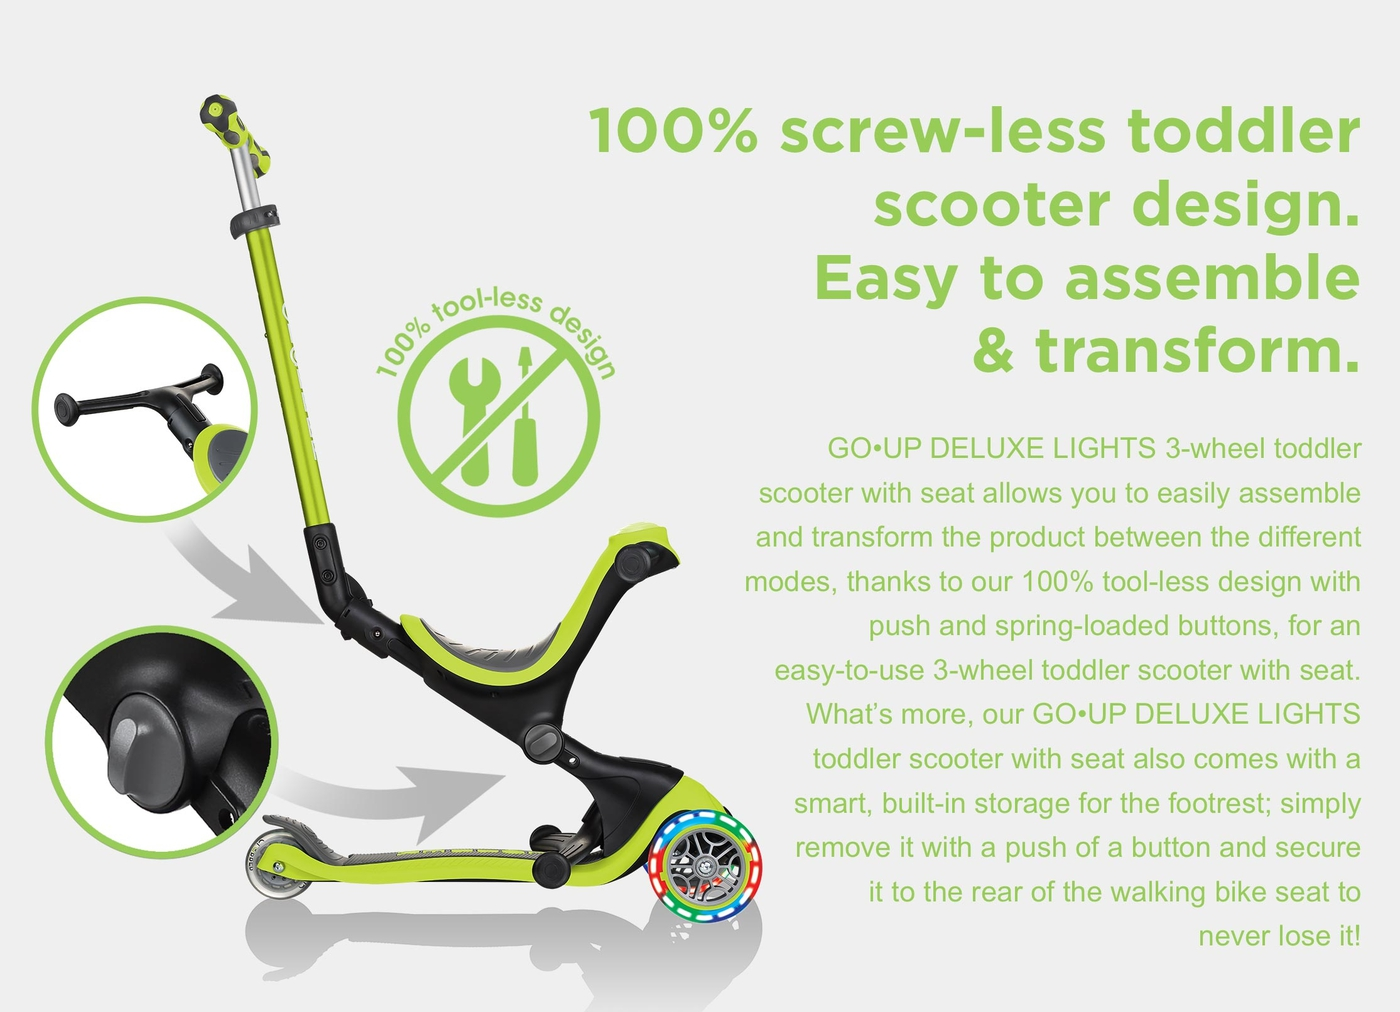 100% screw-less toddler scooter design. Easy to assemble & transform. GO•UP DELUXE LIGHTS 3-wheel toddler scooter with seat allows you to easily assemble and transform the product between the different modes, thanks to our 100% tool-less design with push and spring-loaded buttons, for an easy-to-use 3-wheel toddler scooter with seat. What's more, our GO•UP DELUXE LIGHTS toddler scooter with seat also comes with a smart, built-in storage for the footrest; simply remove it with a push of a button and secure it to the rear of the walking bike seat to never lose it!